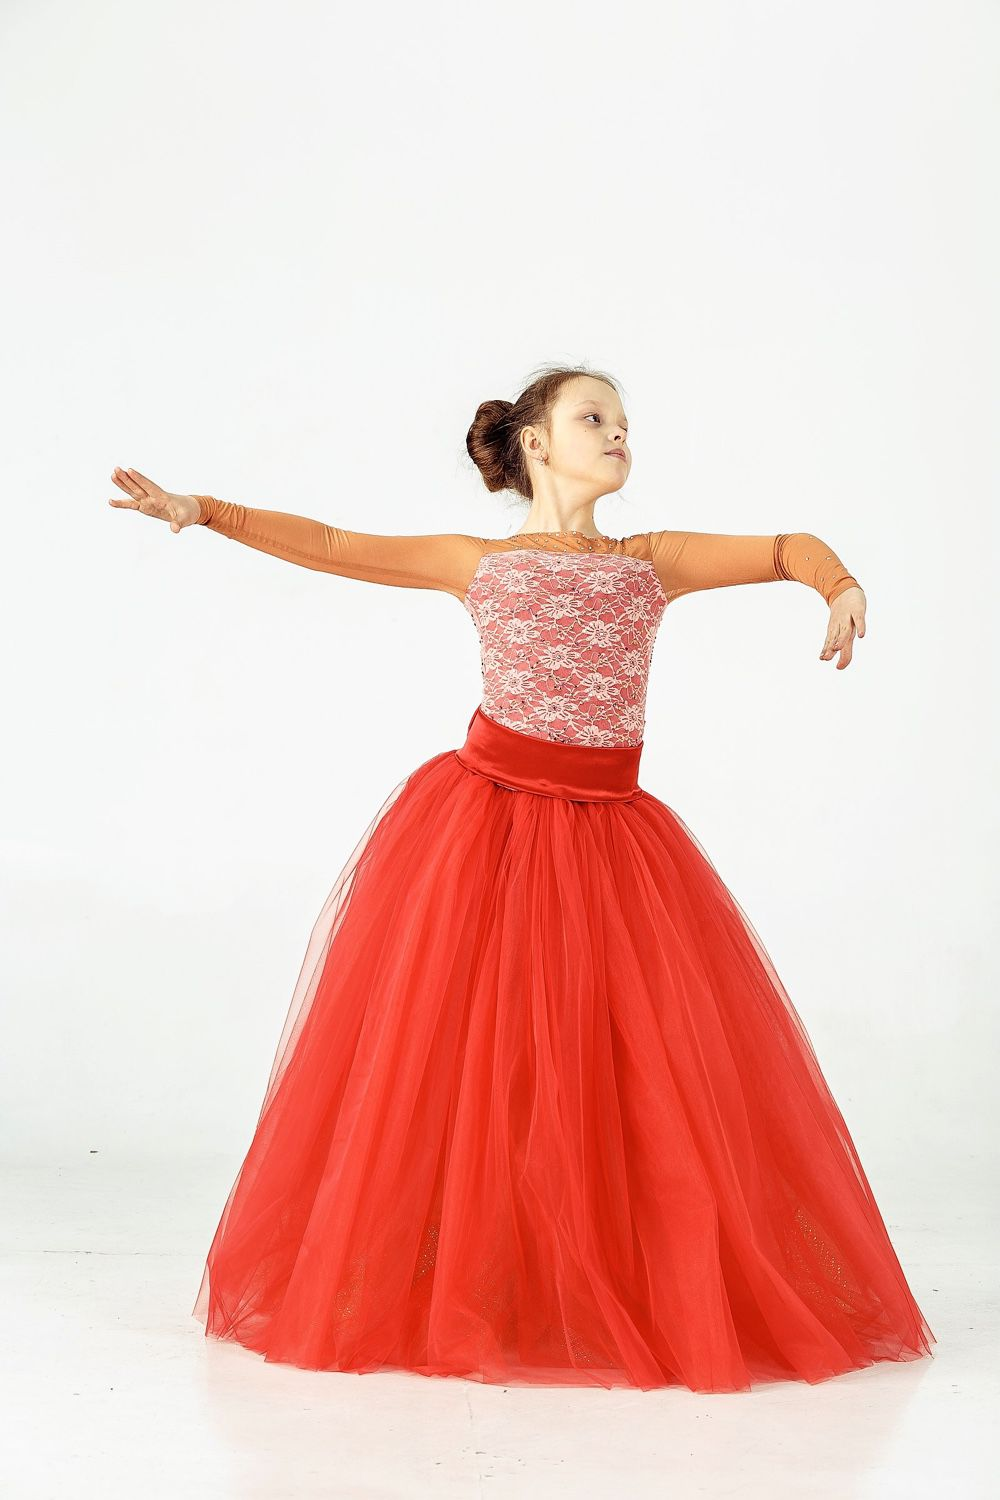 92cf0333c76 Dance Costumes handmade. Ballroom dress for dance GOLD GIATHINT.  EleganceTS. Online shopping on ...